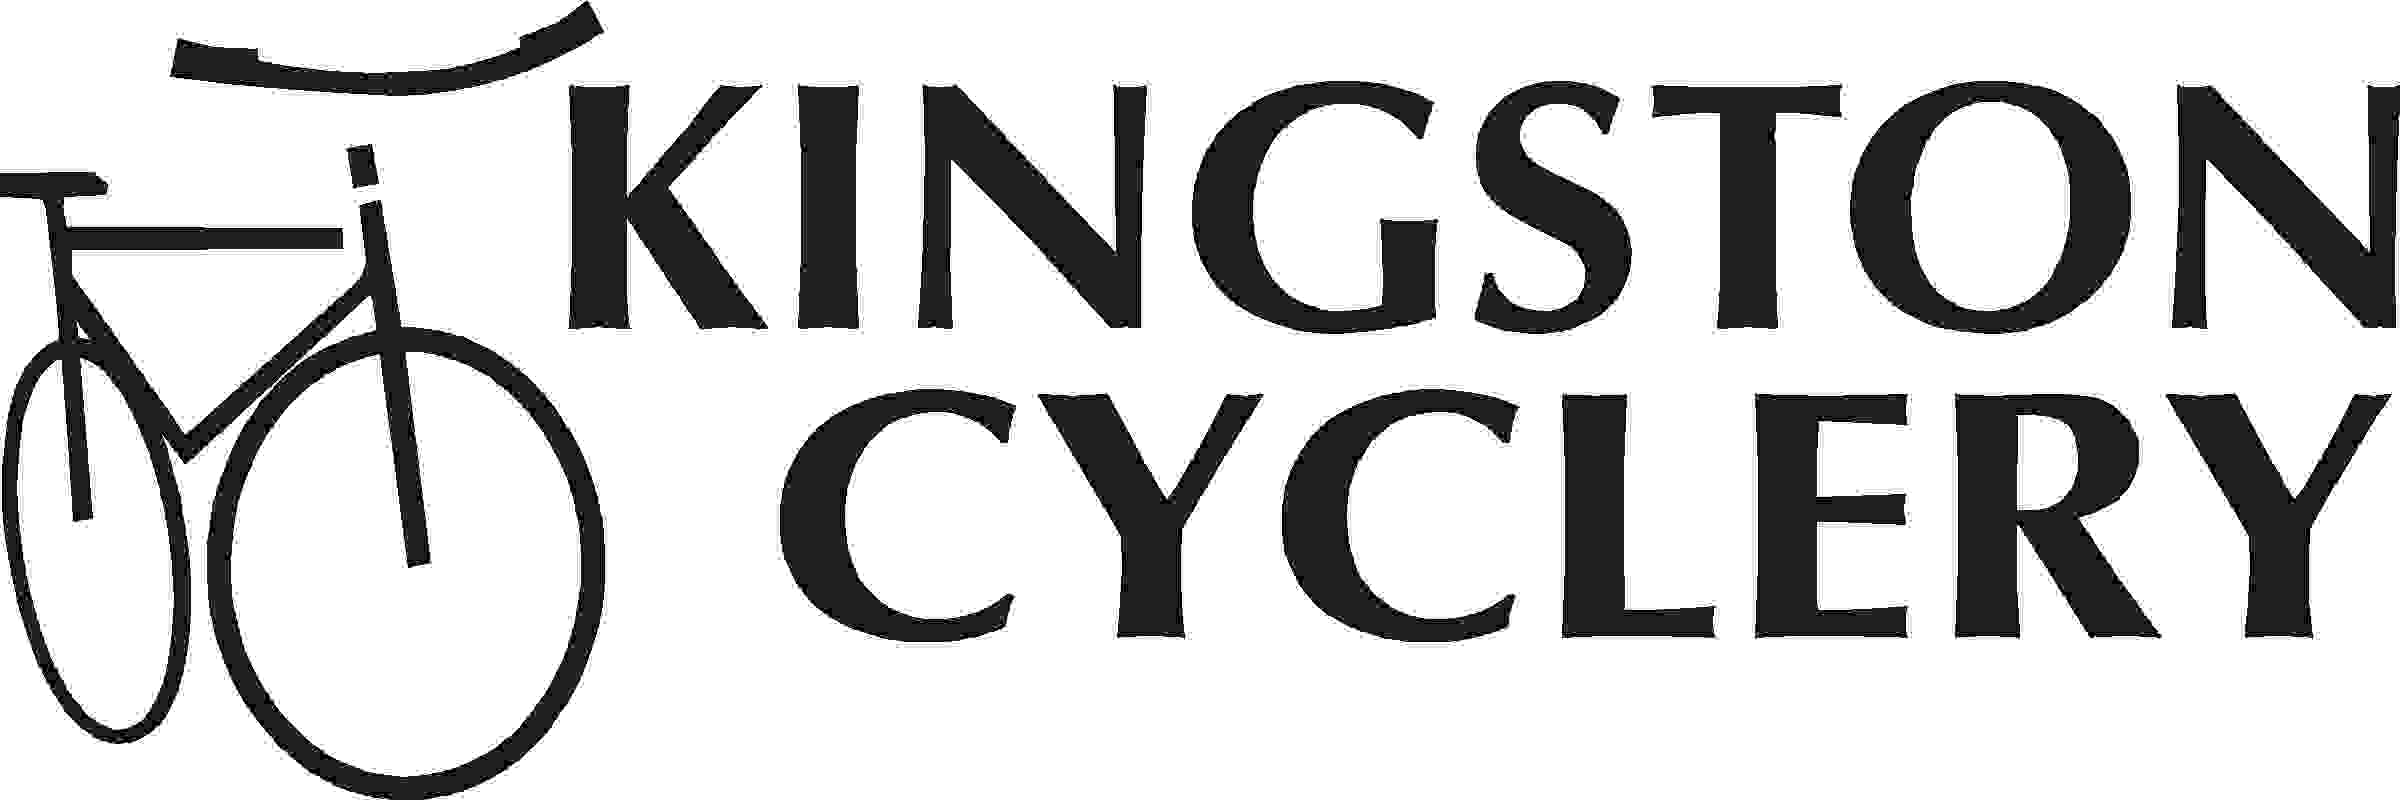 Kingston Cyclery Logo